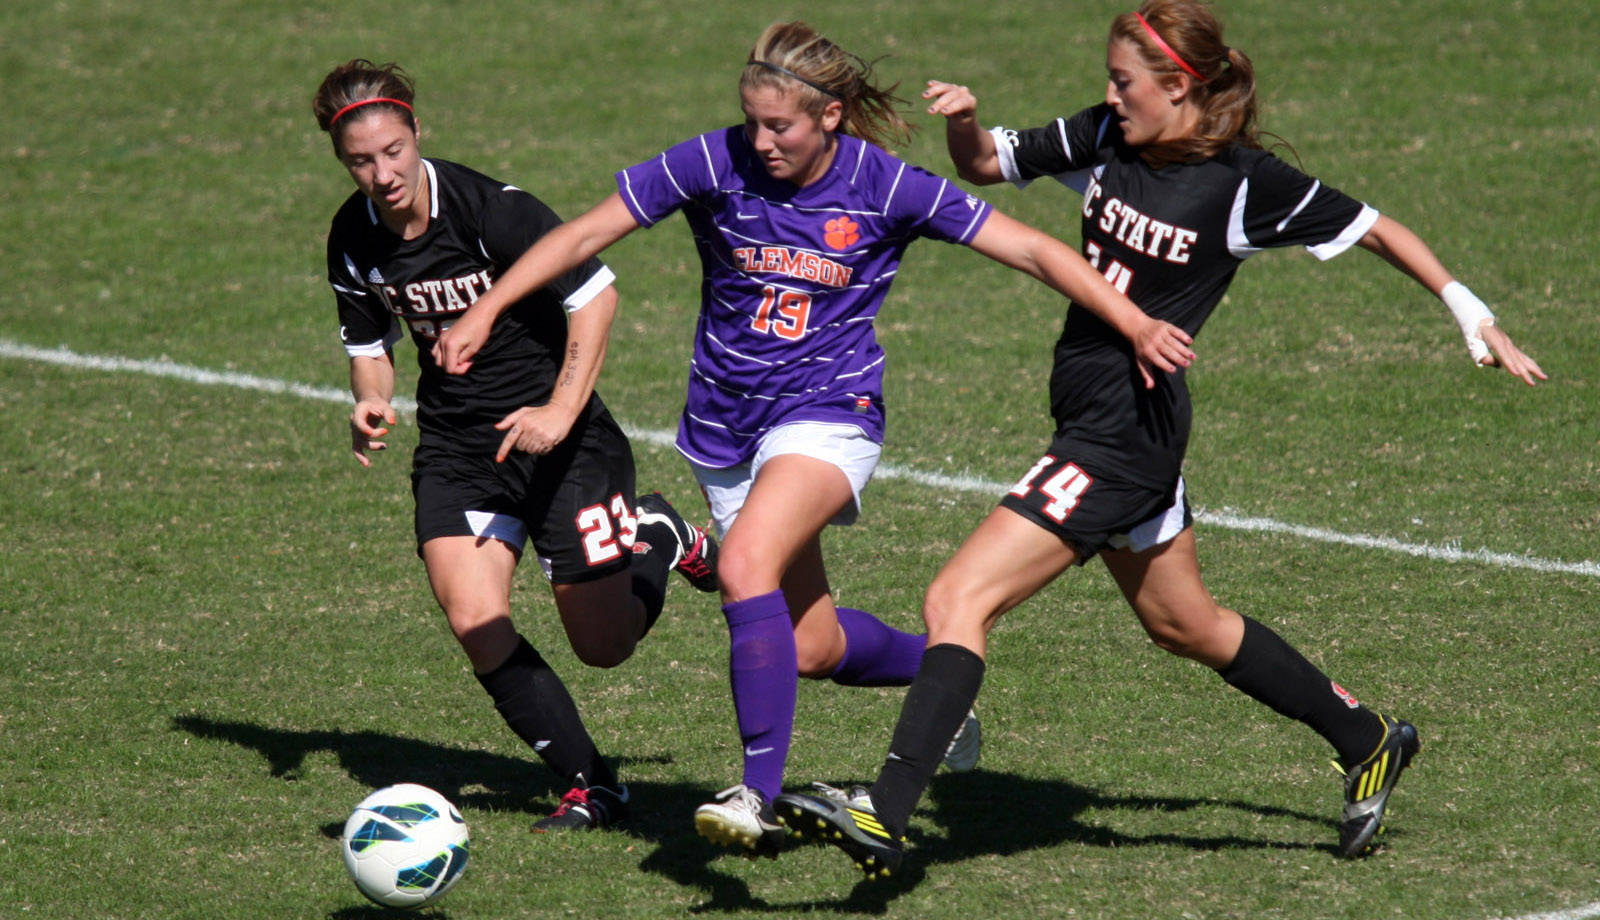 Location Change Announced for April 9 Women's Soccer Spring Matches